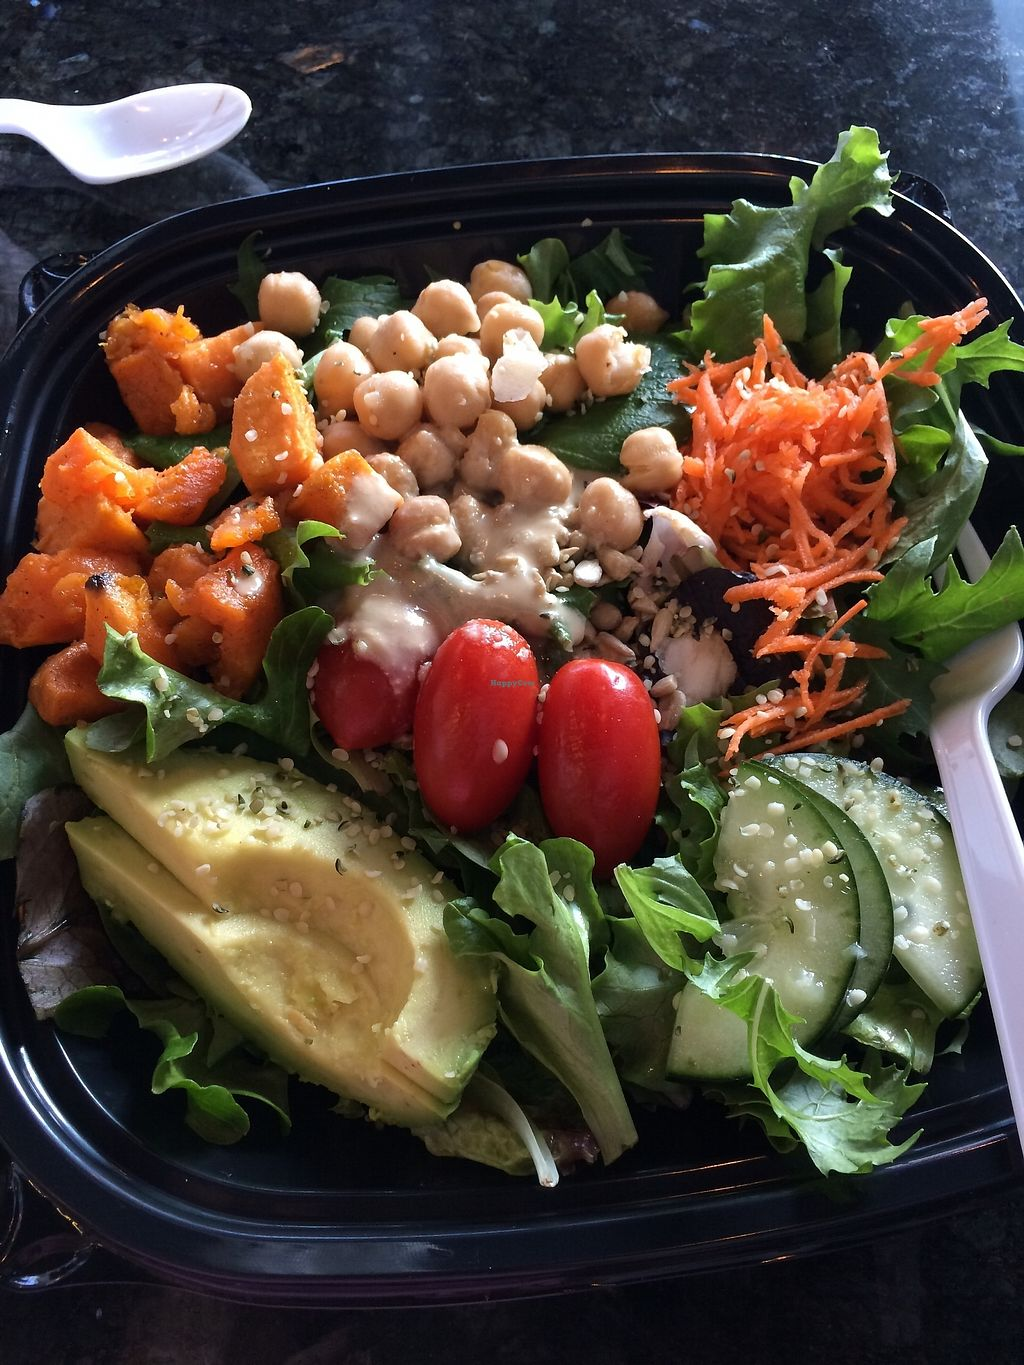 "Photo of Thrive Cafe  by <a href=""/members/profile/HeidiMignonne"">HeidiMignonne</a> <br/>Salad <br/> March 7, 2018  - <a href='/contact/abuse/image/99364/367836'>Report</a>"